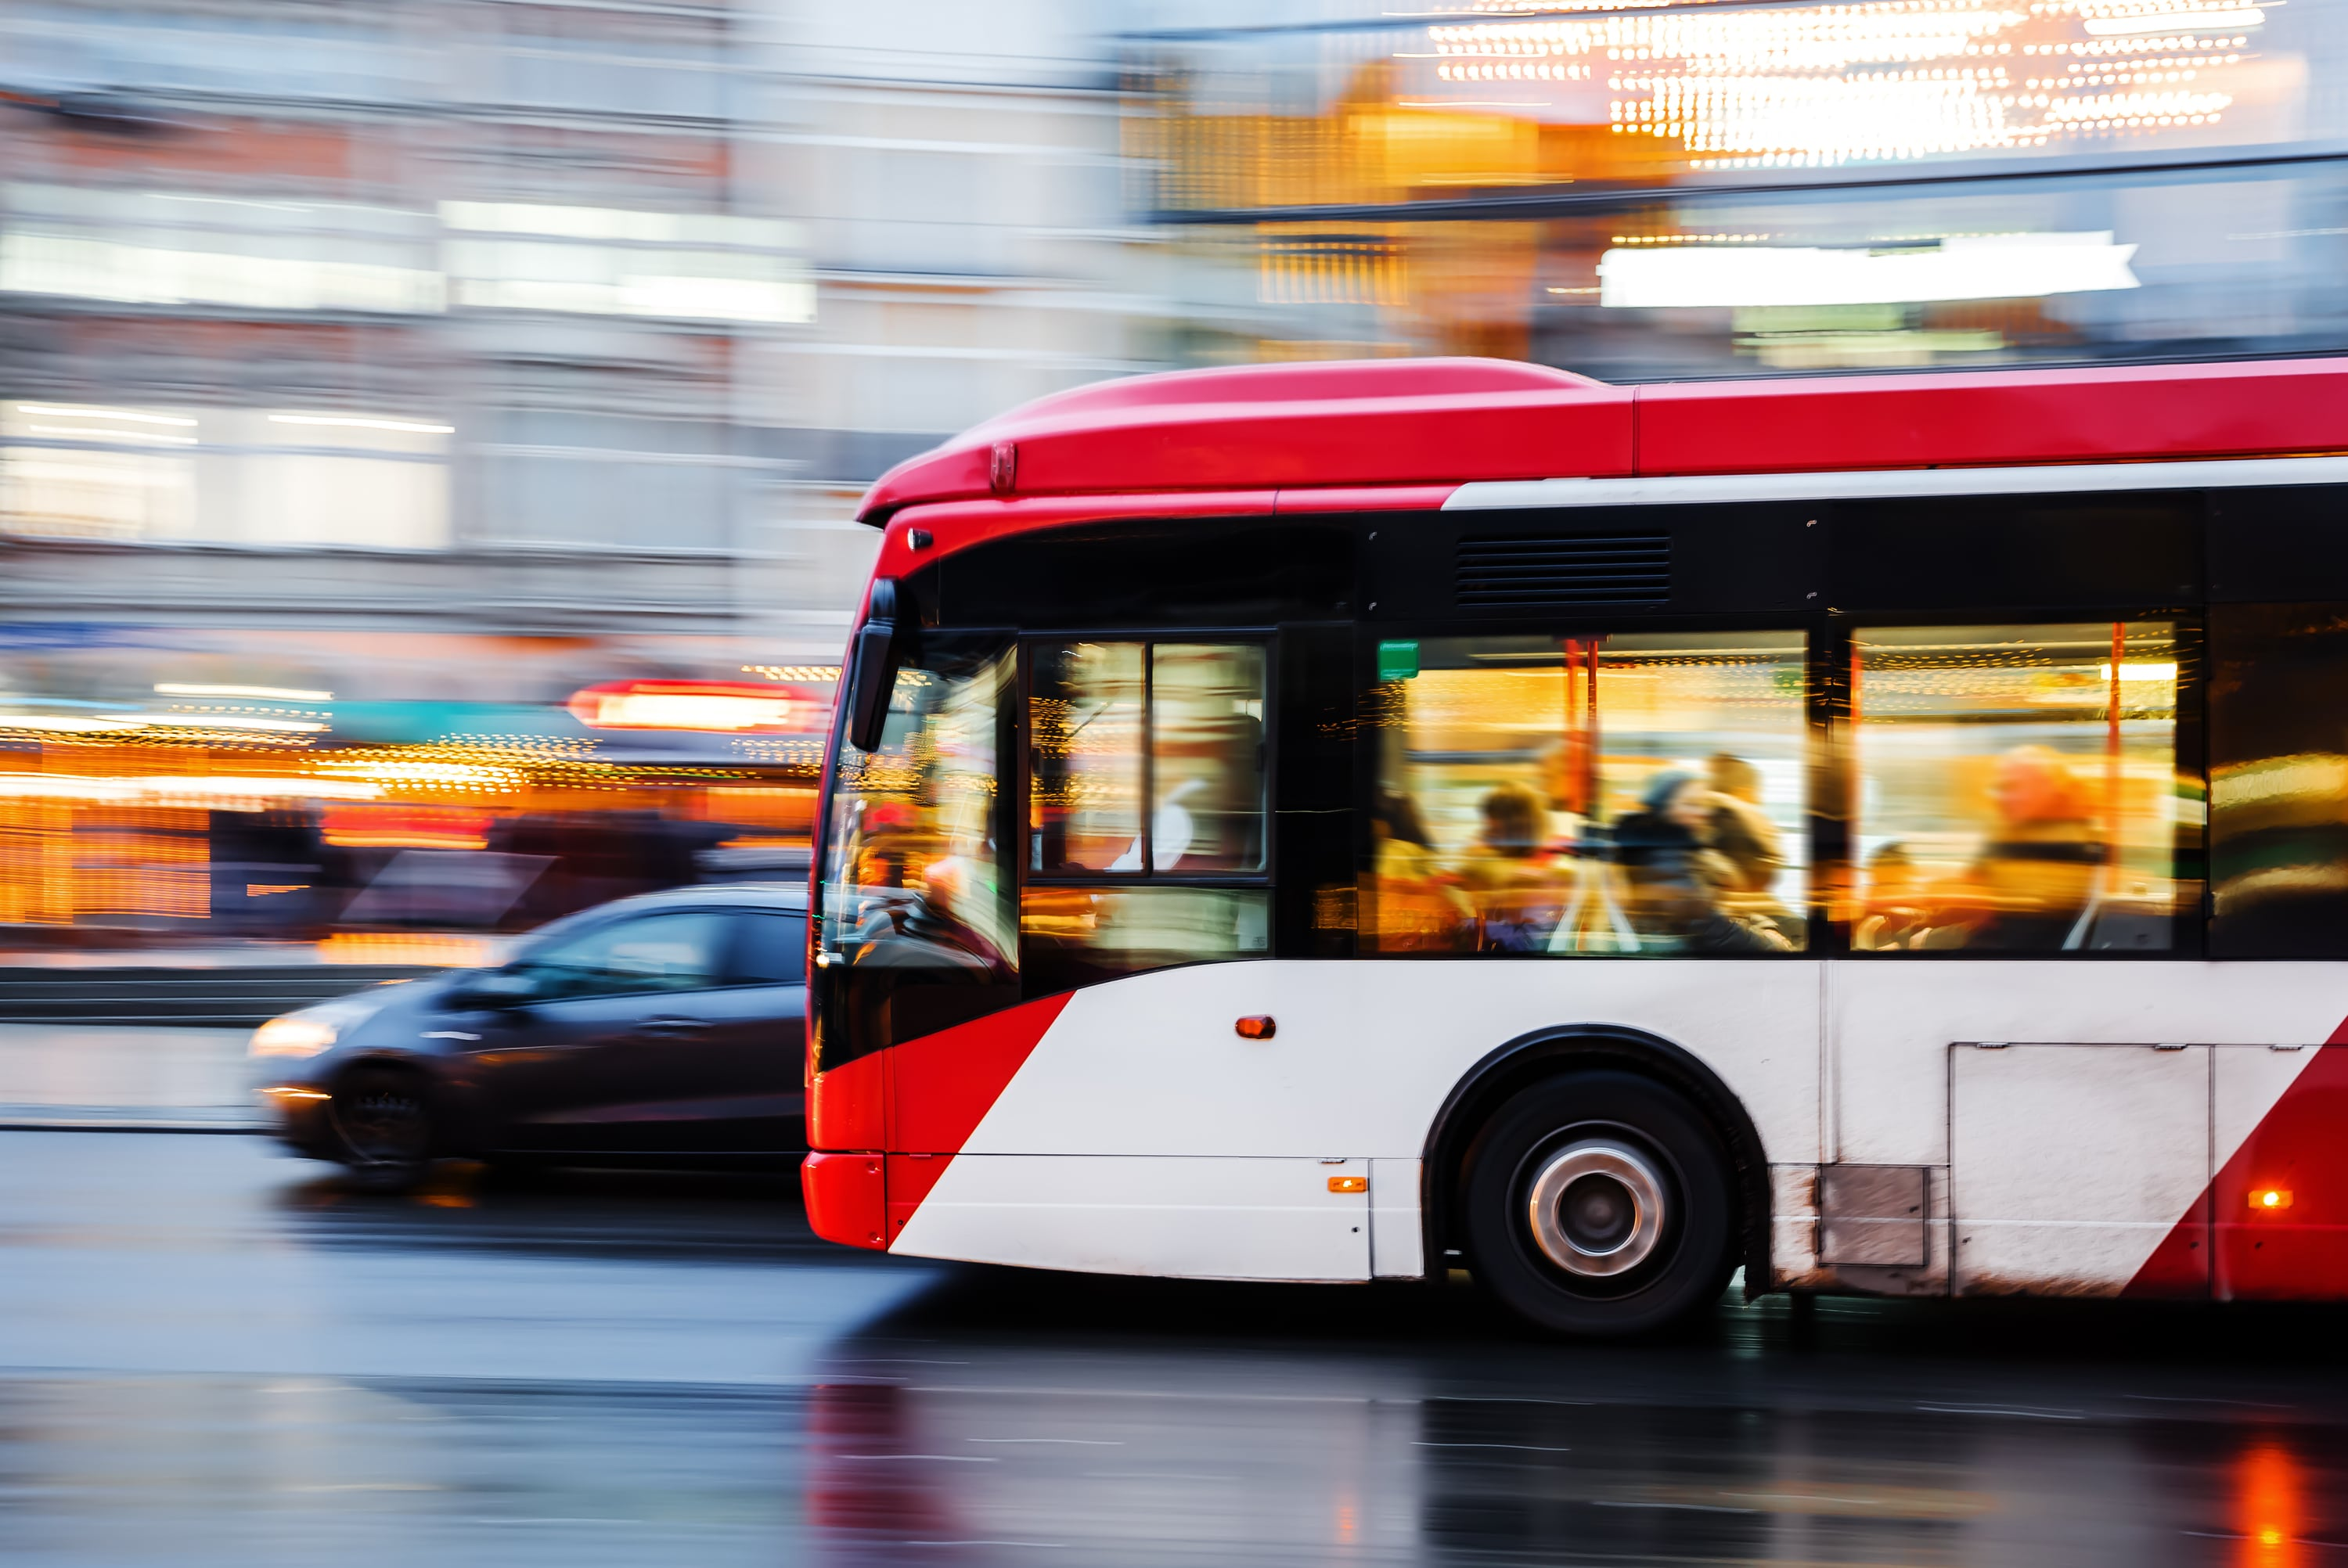 Istanbul's use of public transport drops by 90 percent in COVID-19 outbreak